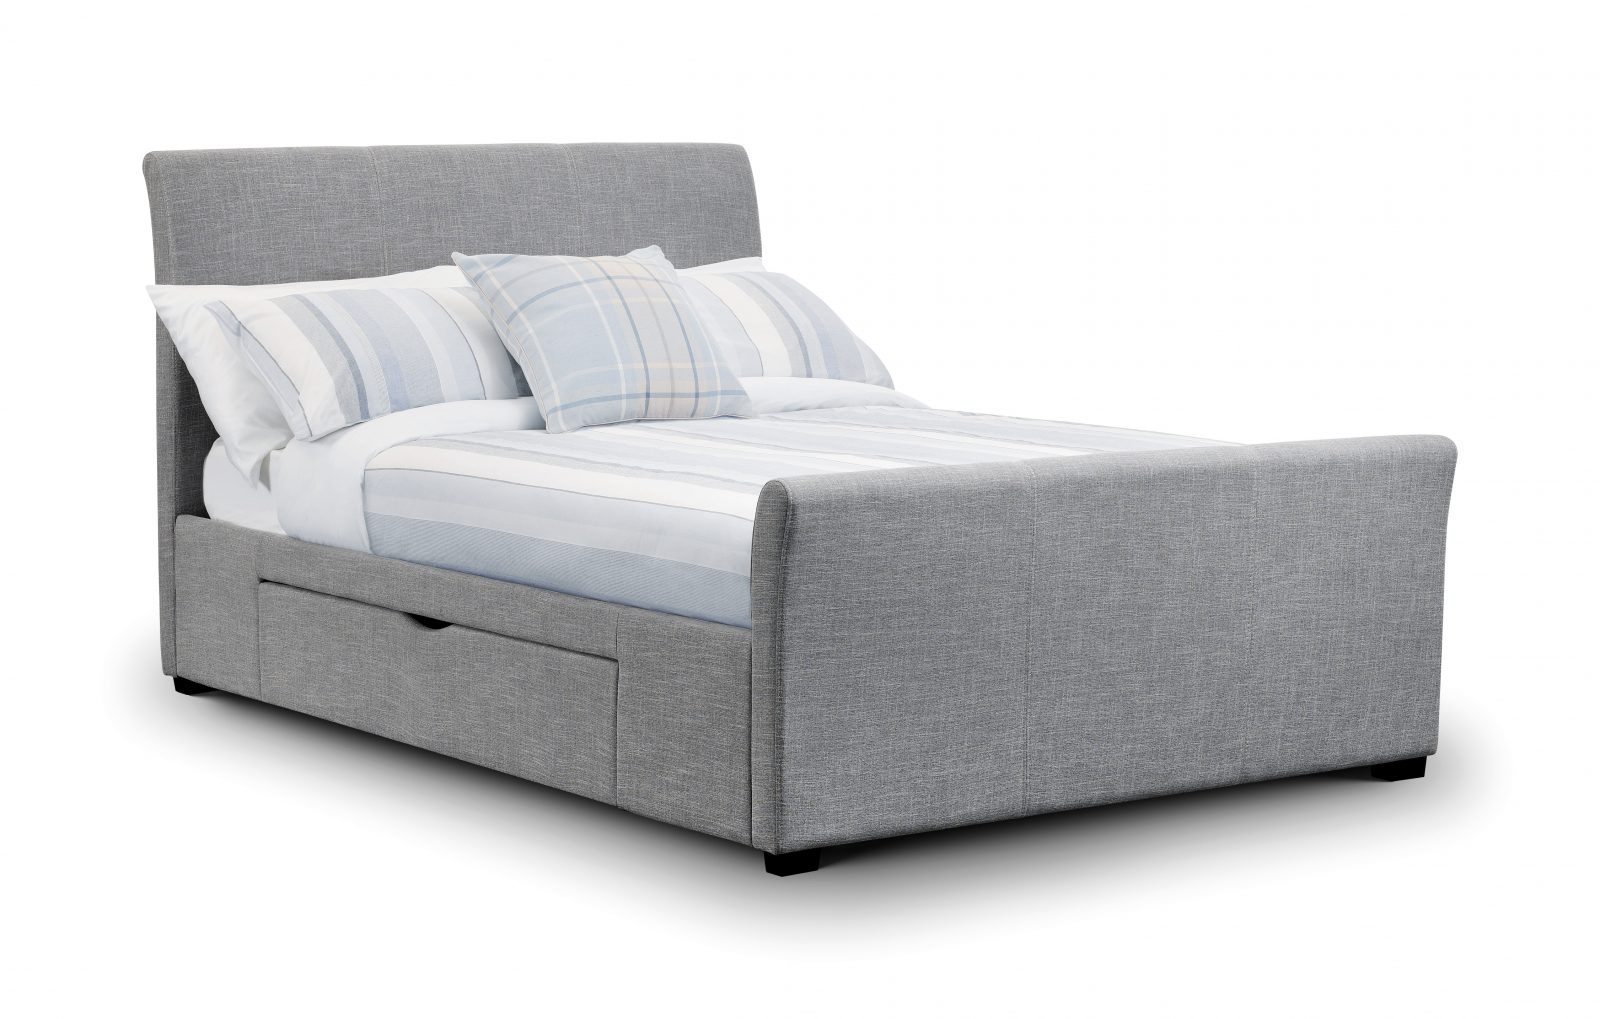 Capri Double Fabric Bed Frame with Drawers